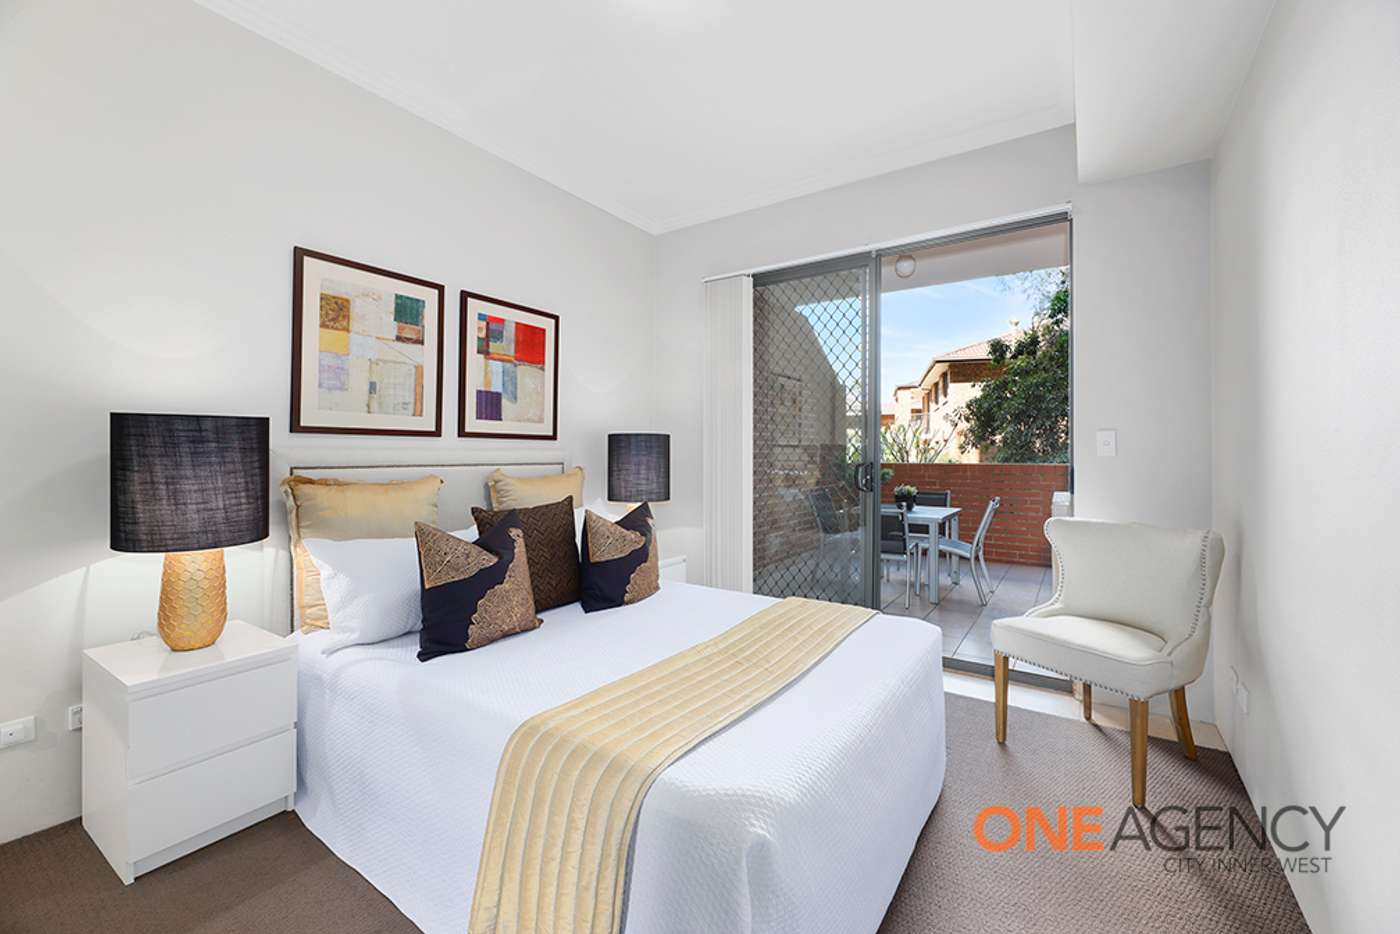 Sixth view of Homely apartment listing, 212/354 Church Street, Parramatta NSW 2150